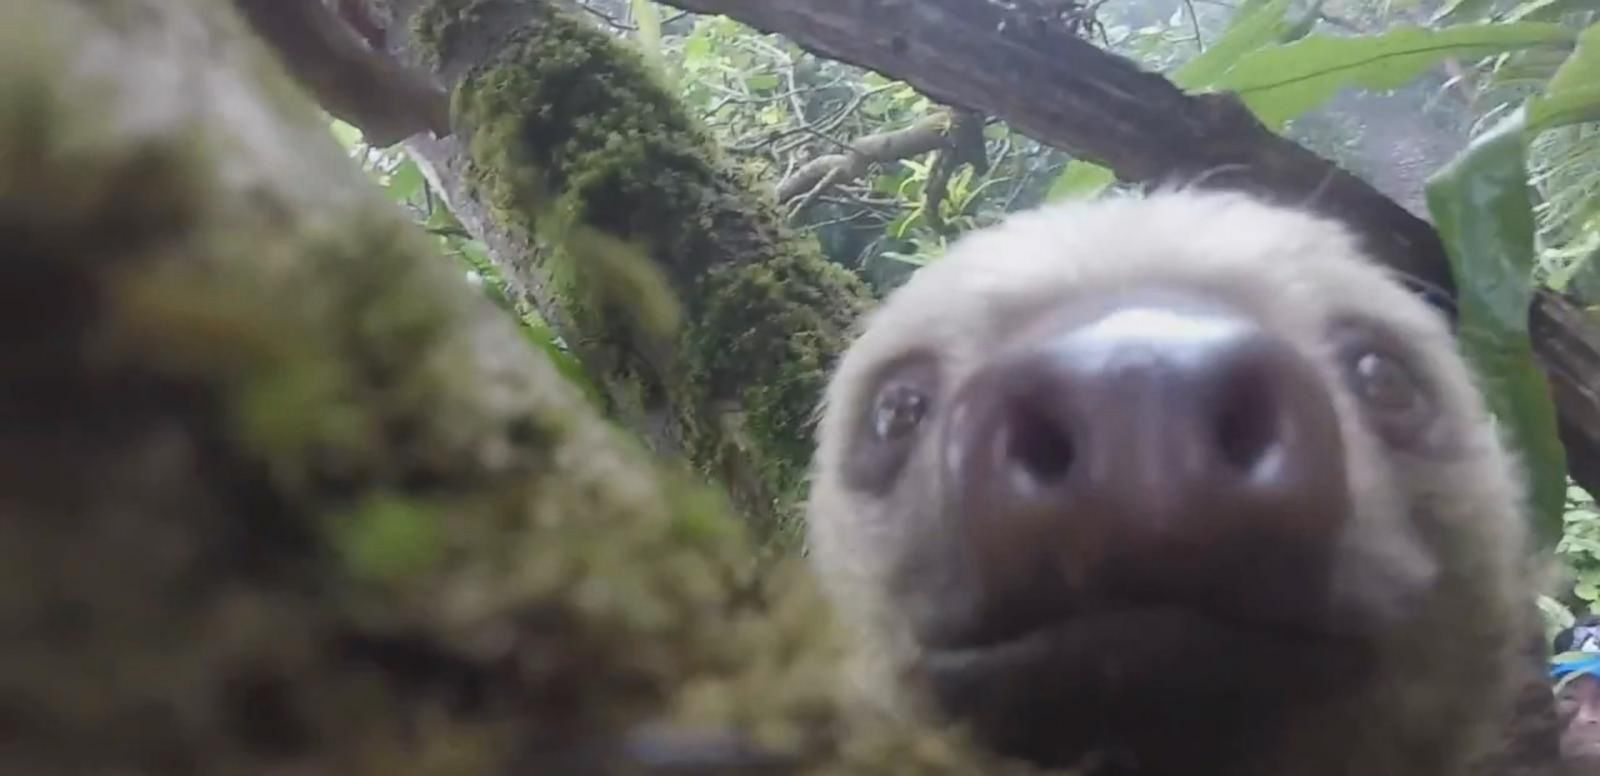 VIDEO: Curious Sloth Takes a Selfie